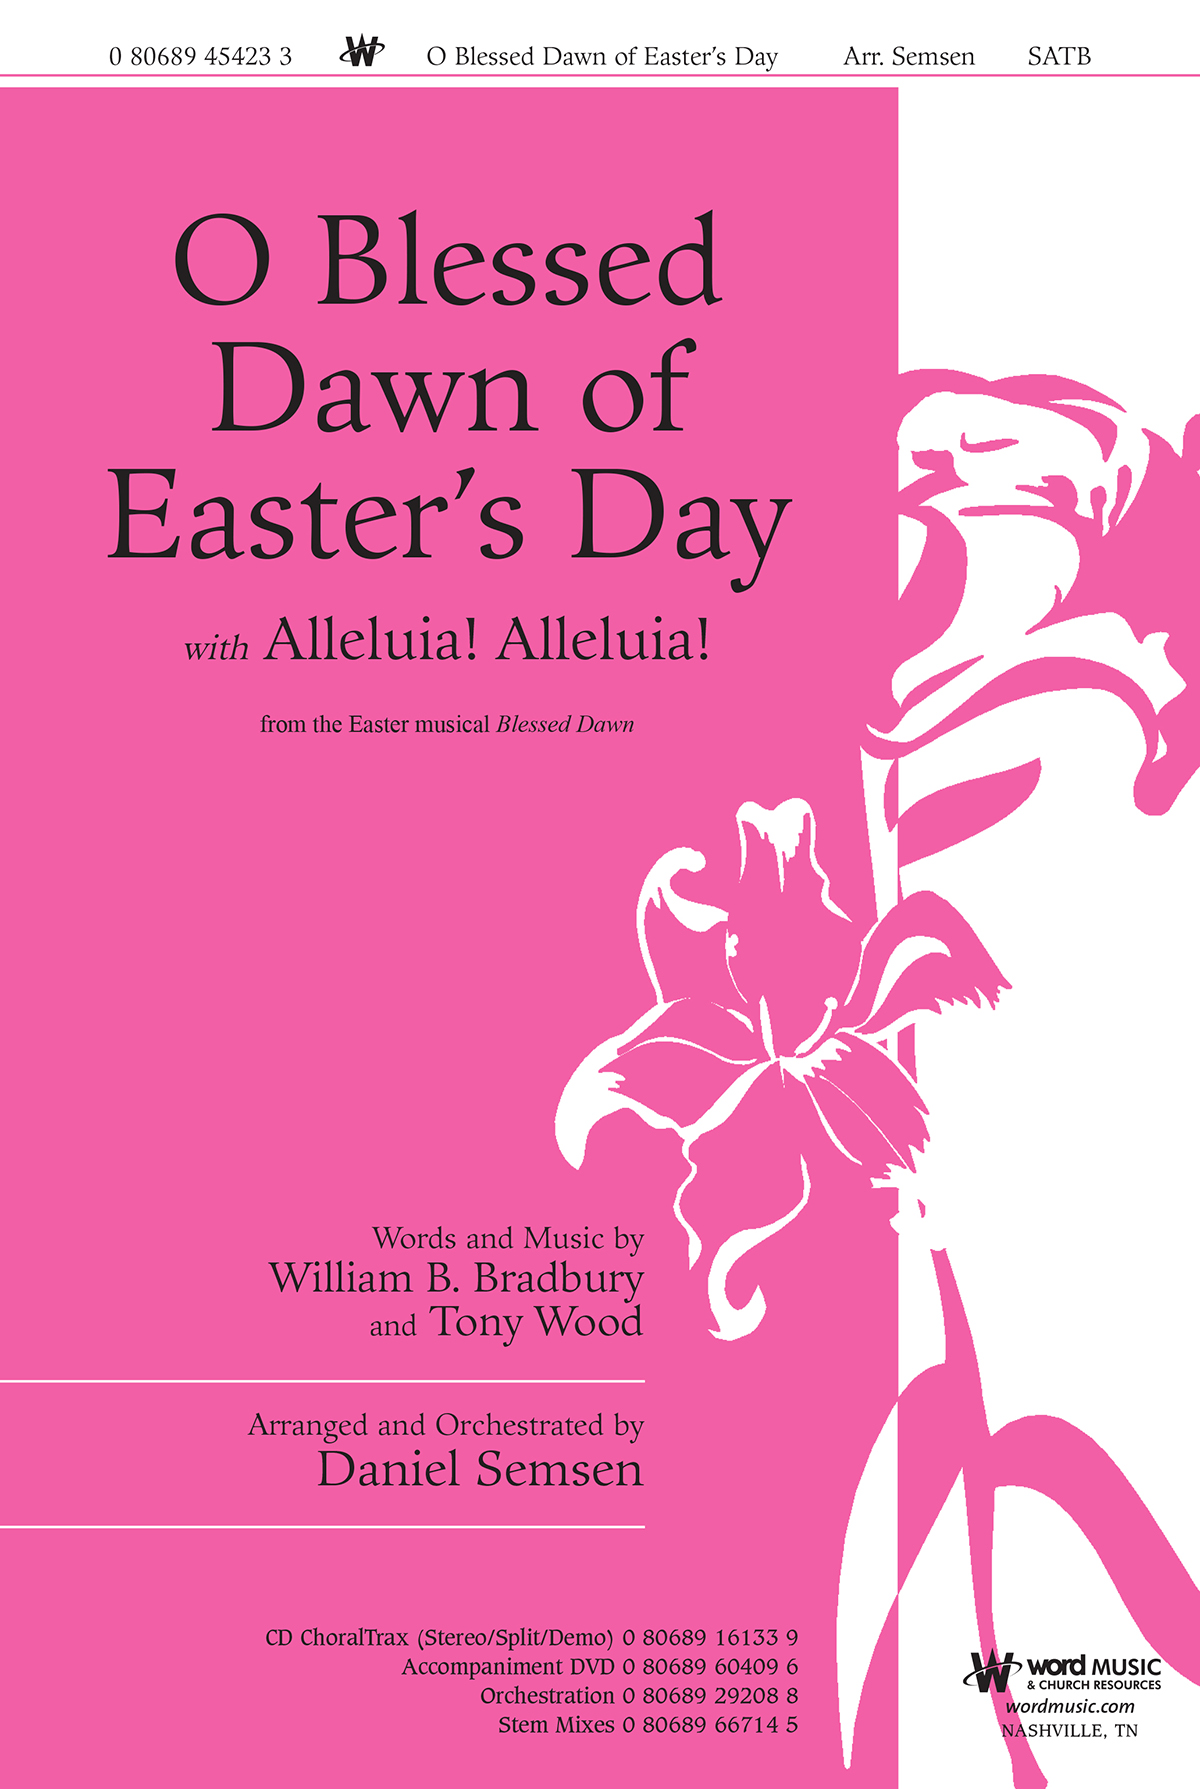 O Blessed Dawn of Easter's Day with Alleluia! Alleluia!